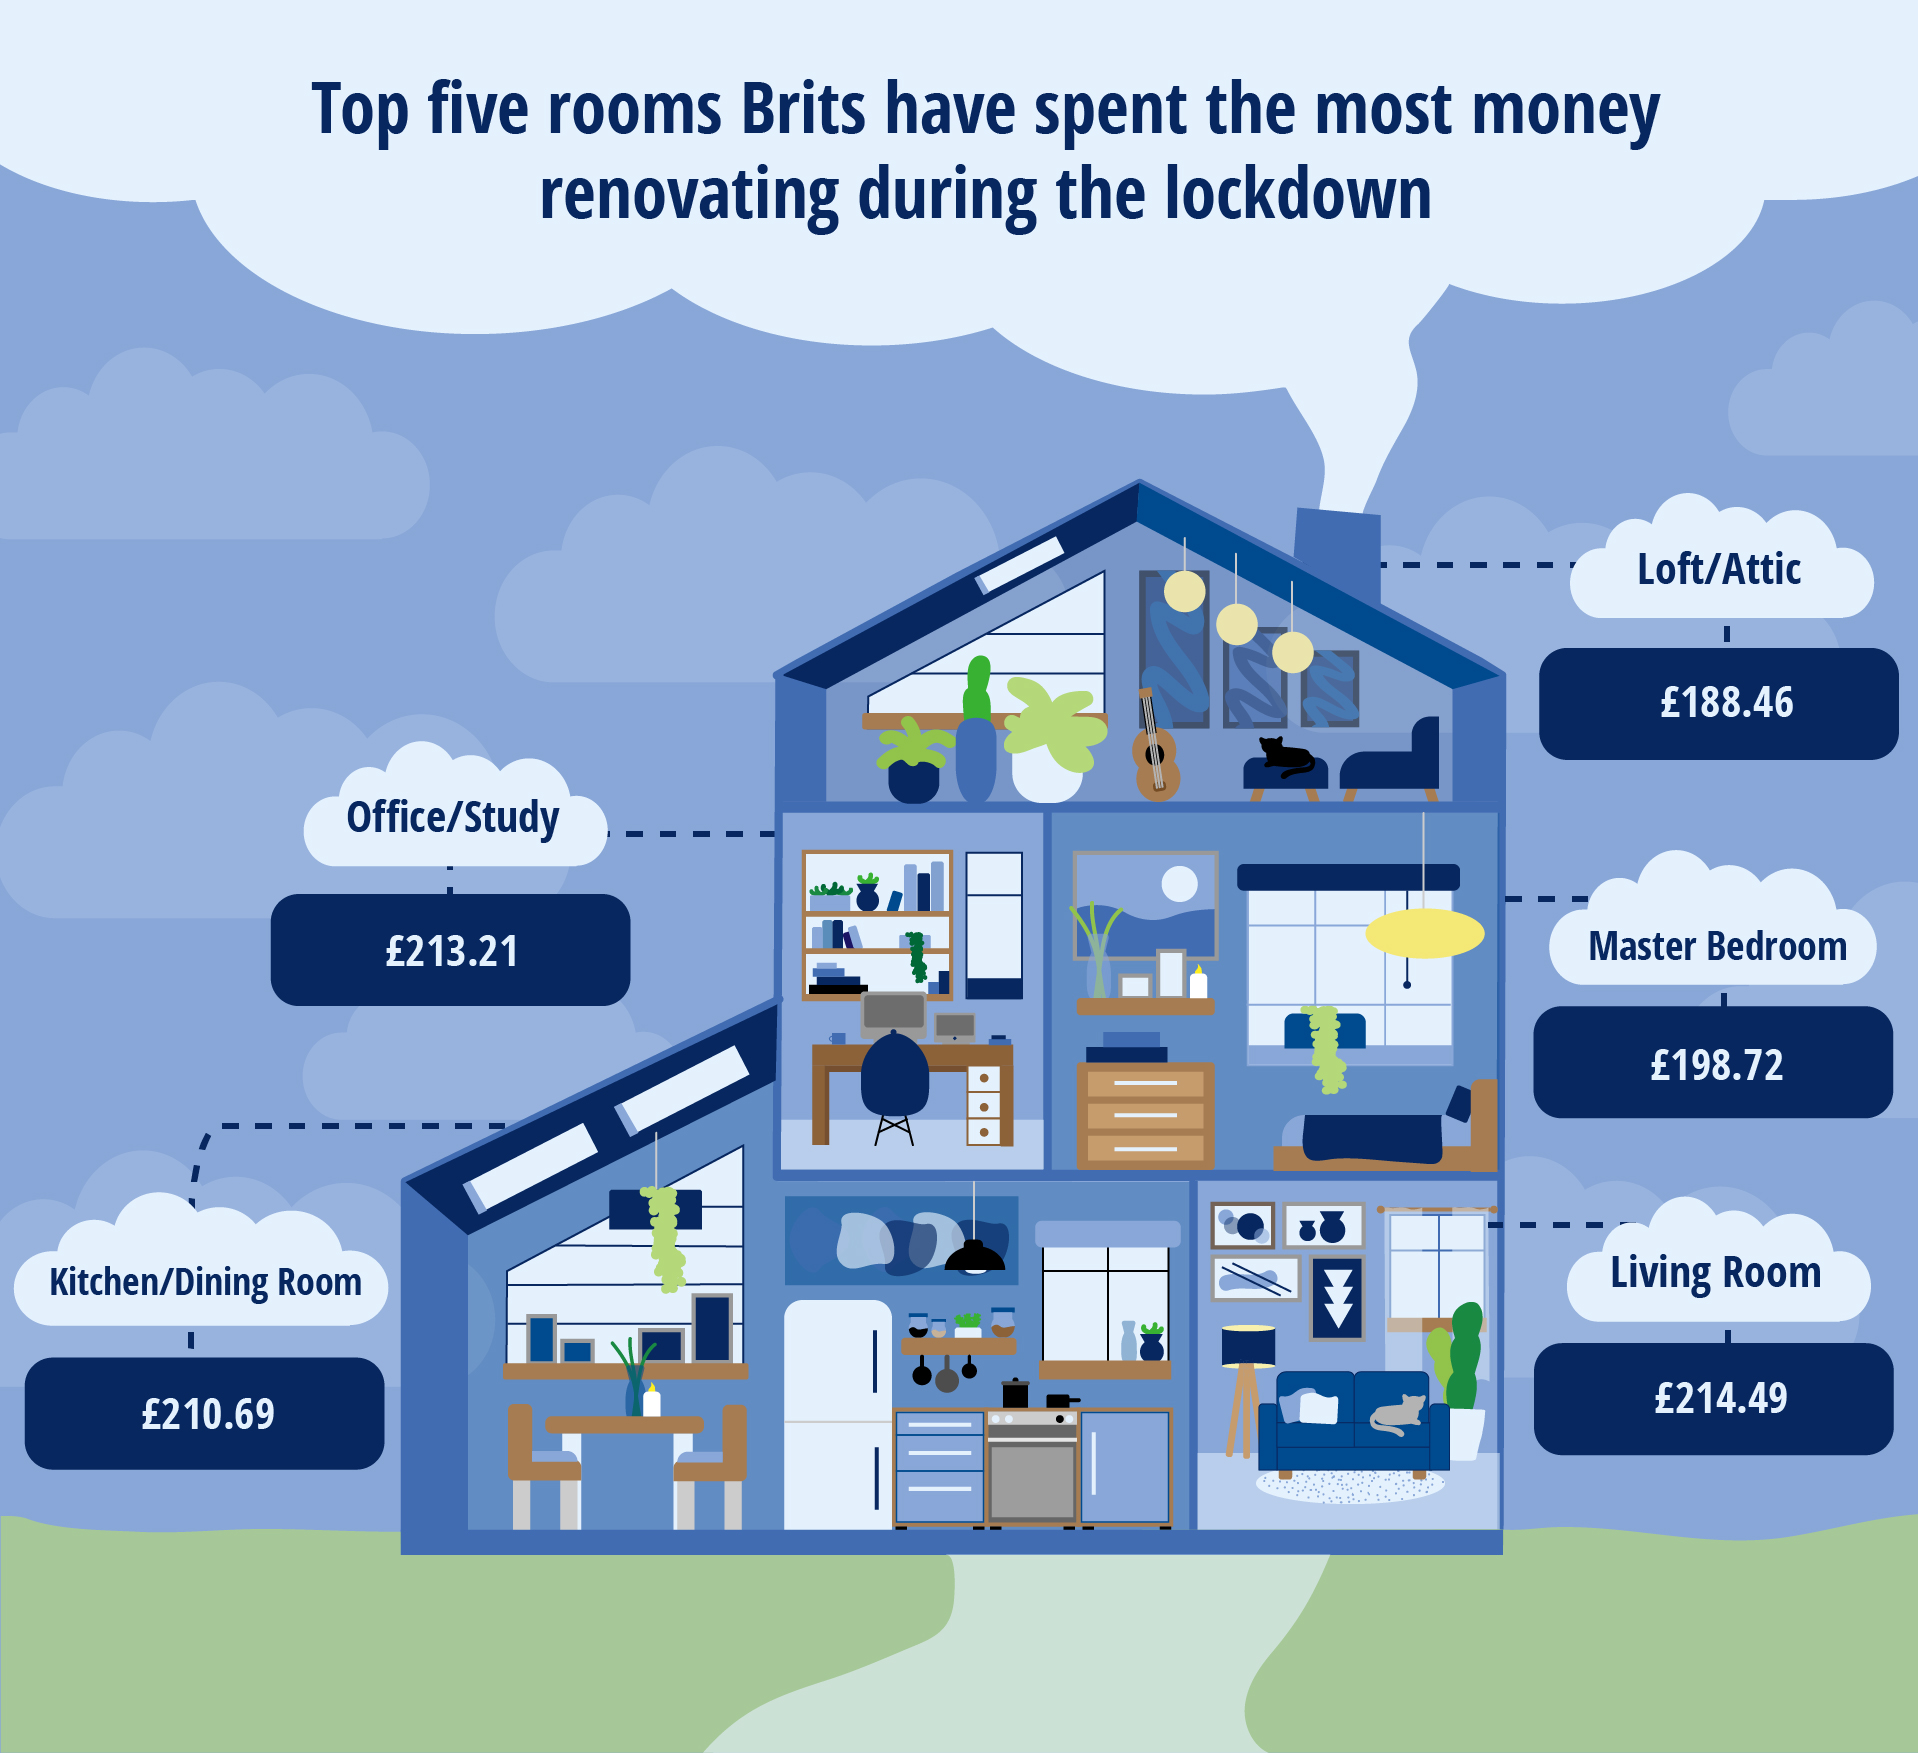 An infographic to show the top five rooms Brits have spent the most money renovating during the lockdown.